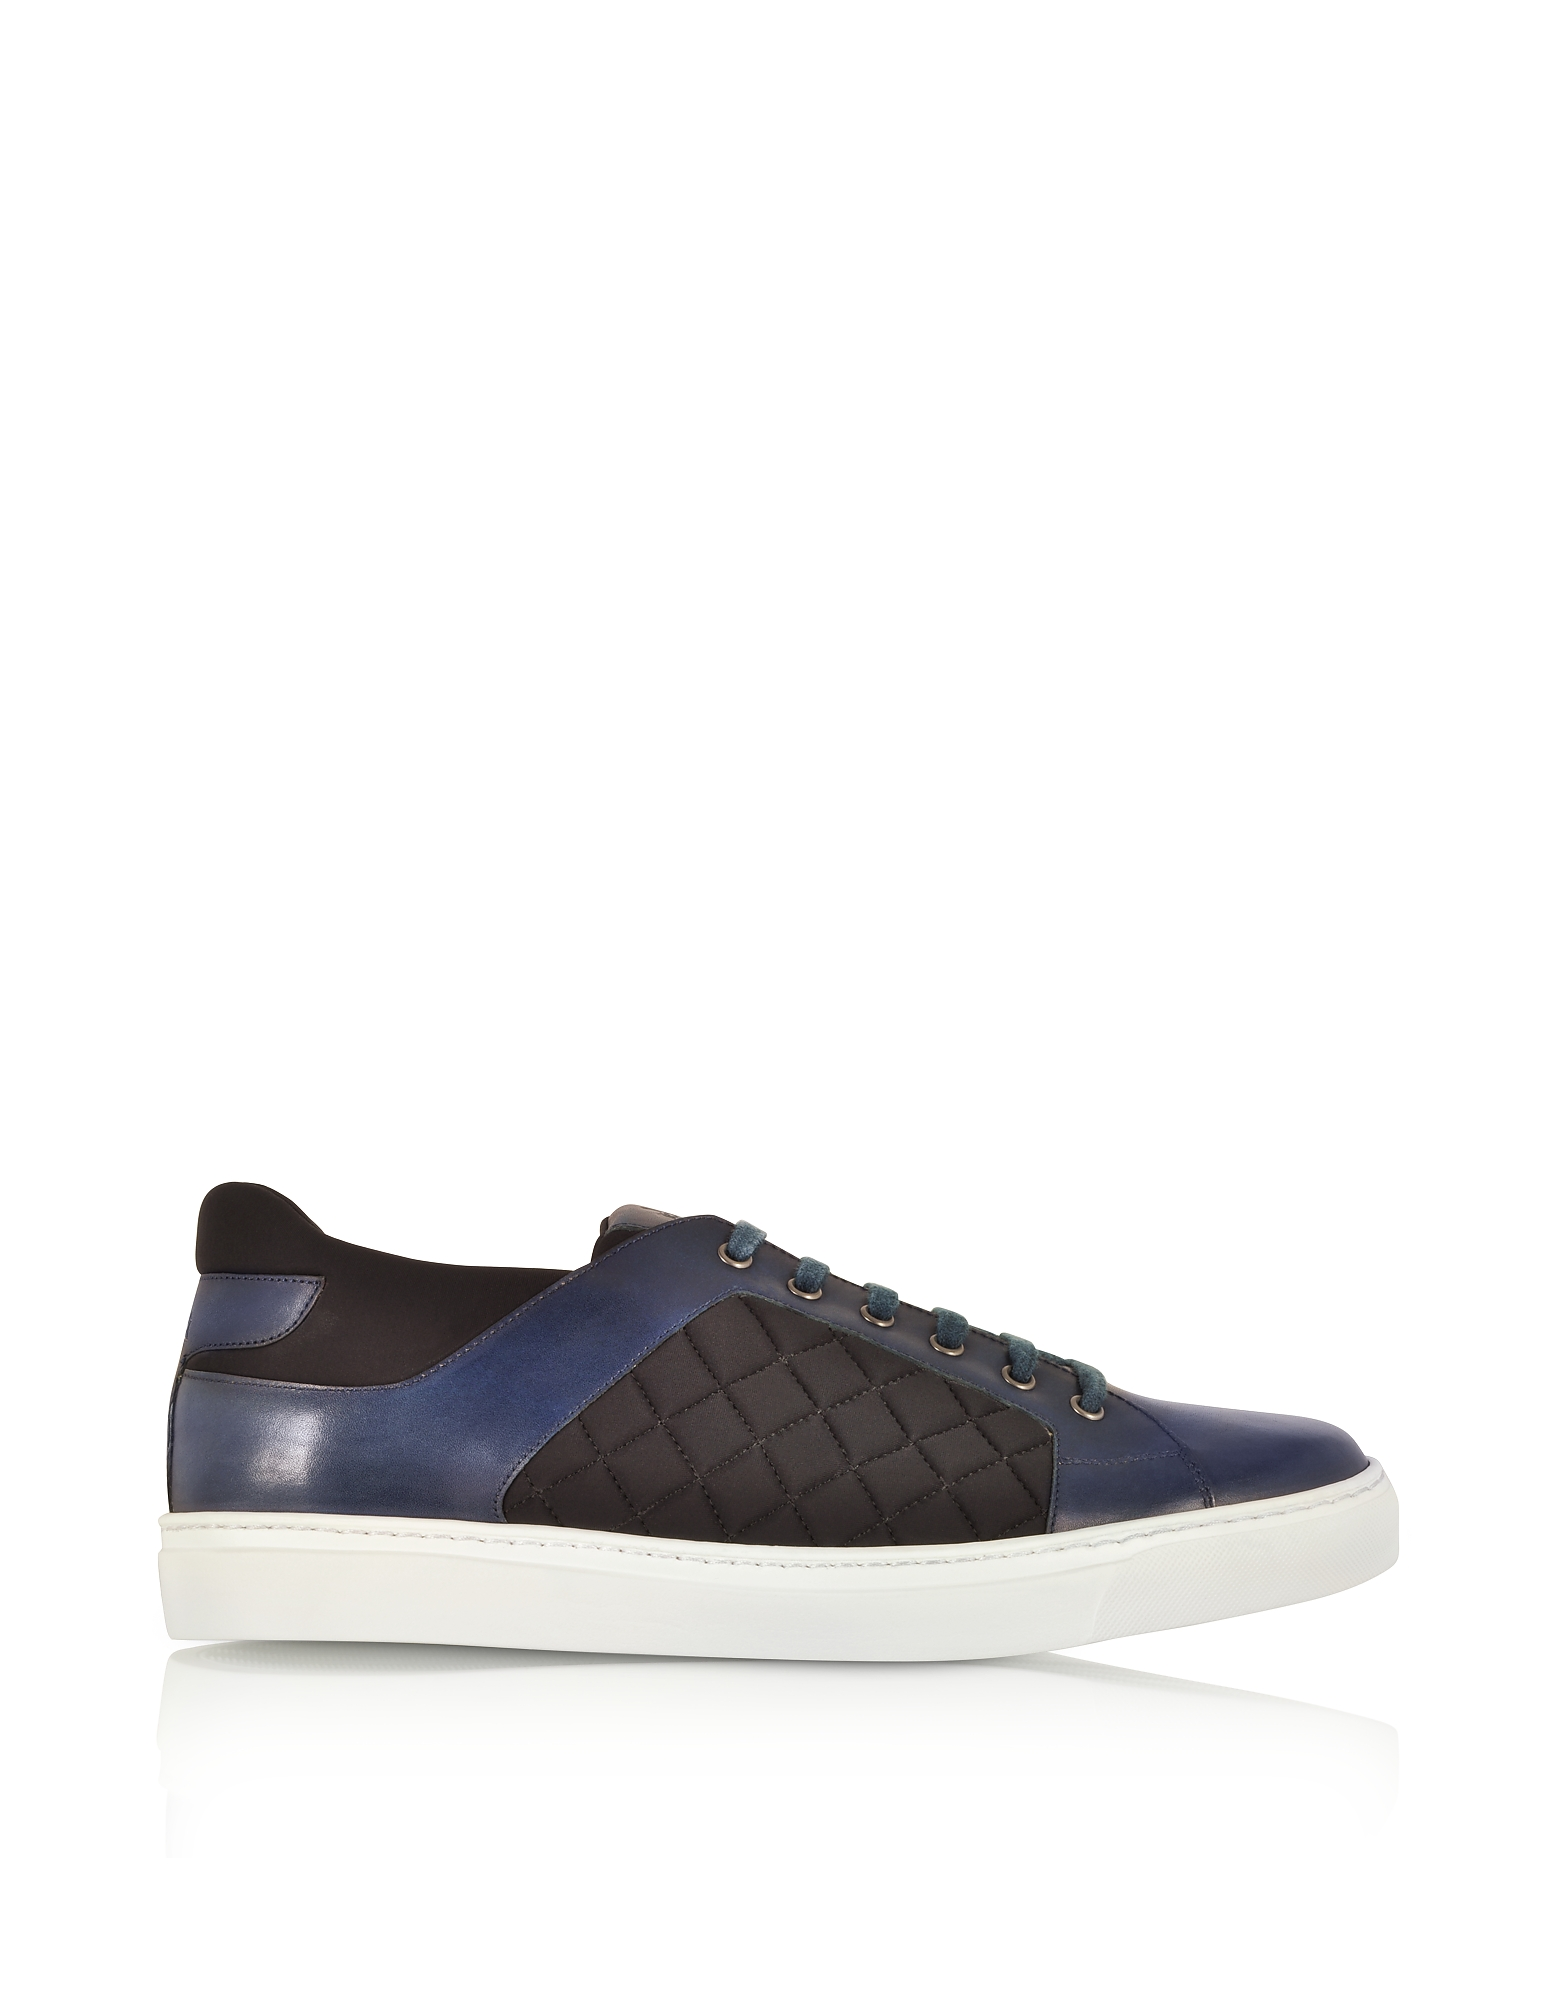 Navy Blue Leather and Black Quilted Nylon Men's Sneakers